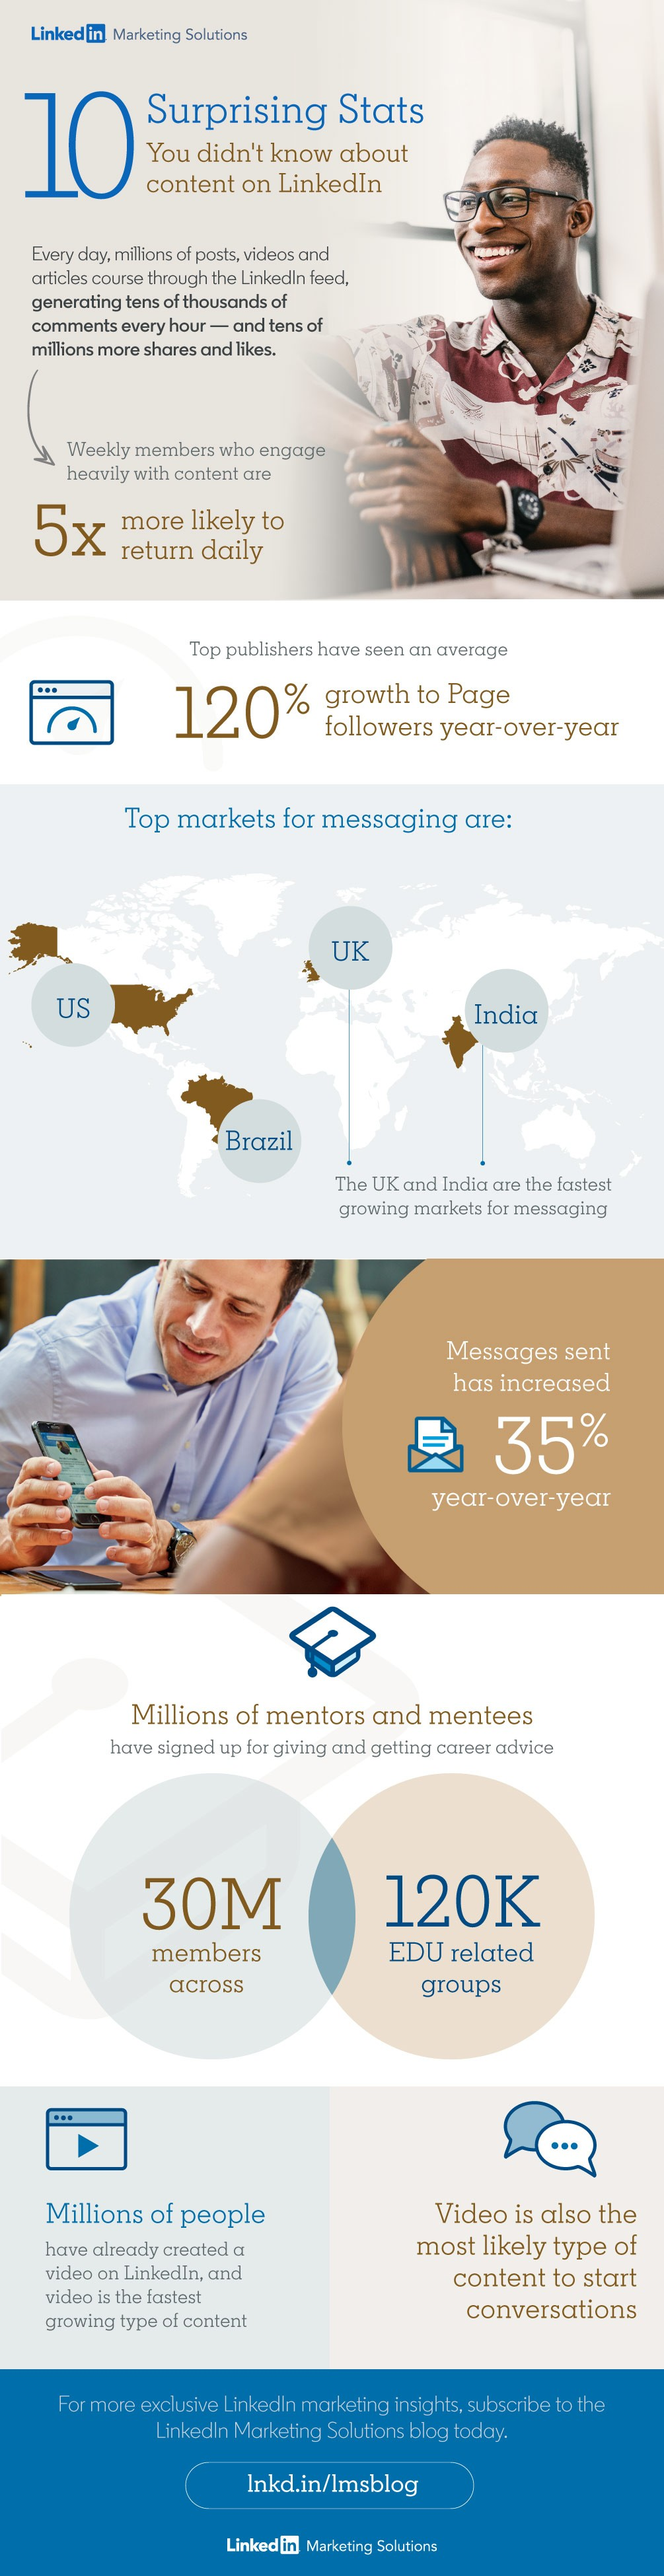 Linkedin content stats infographic